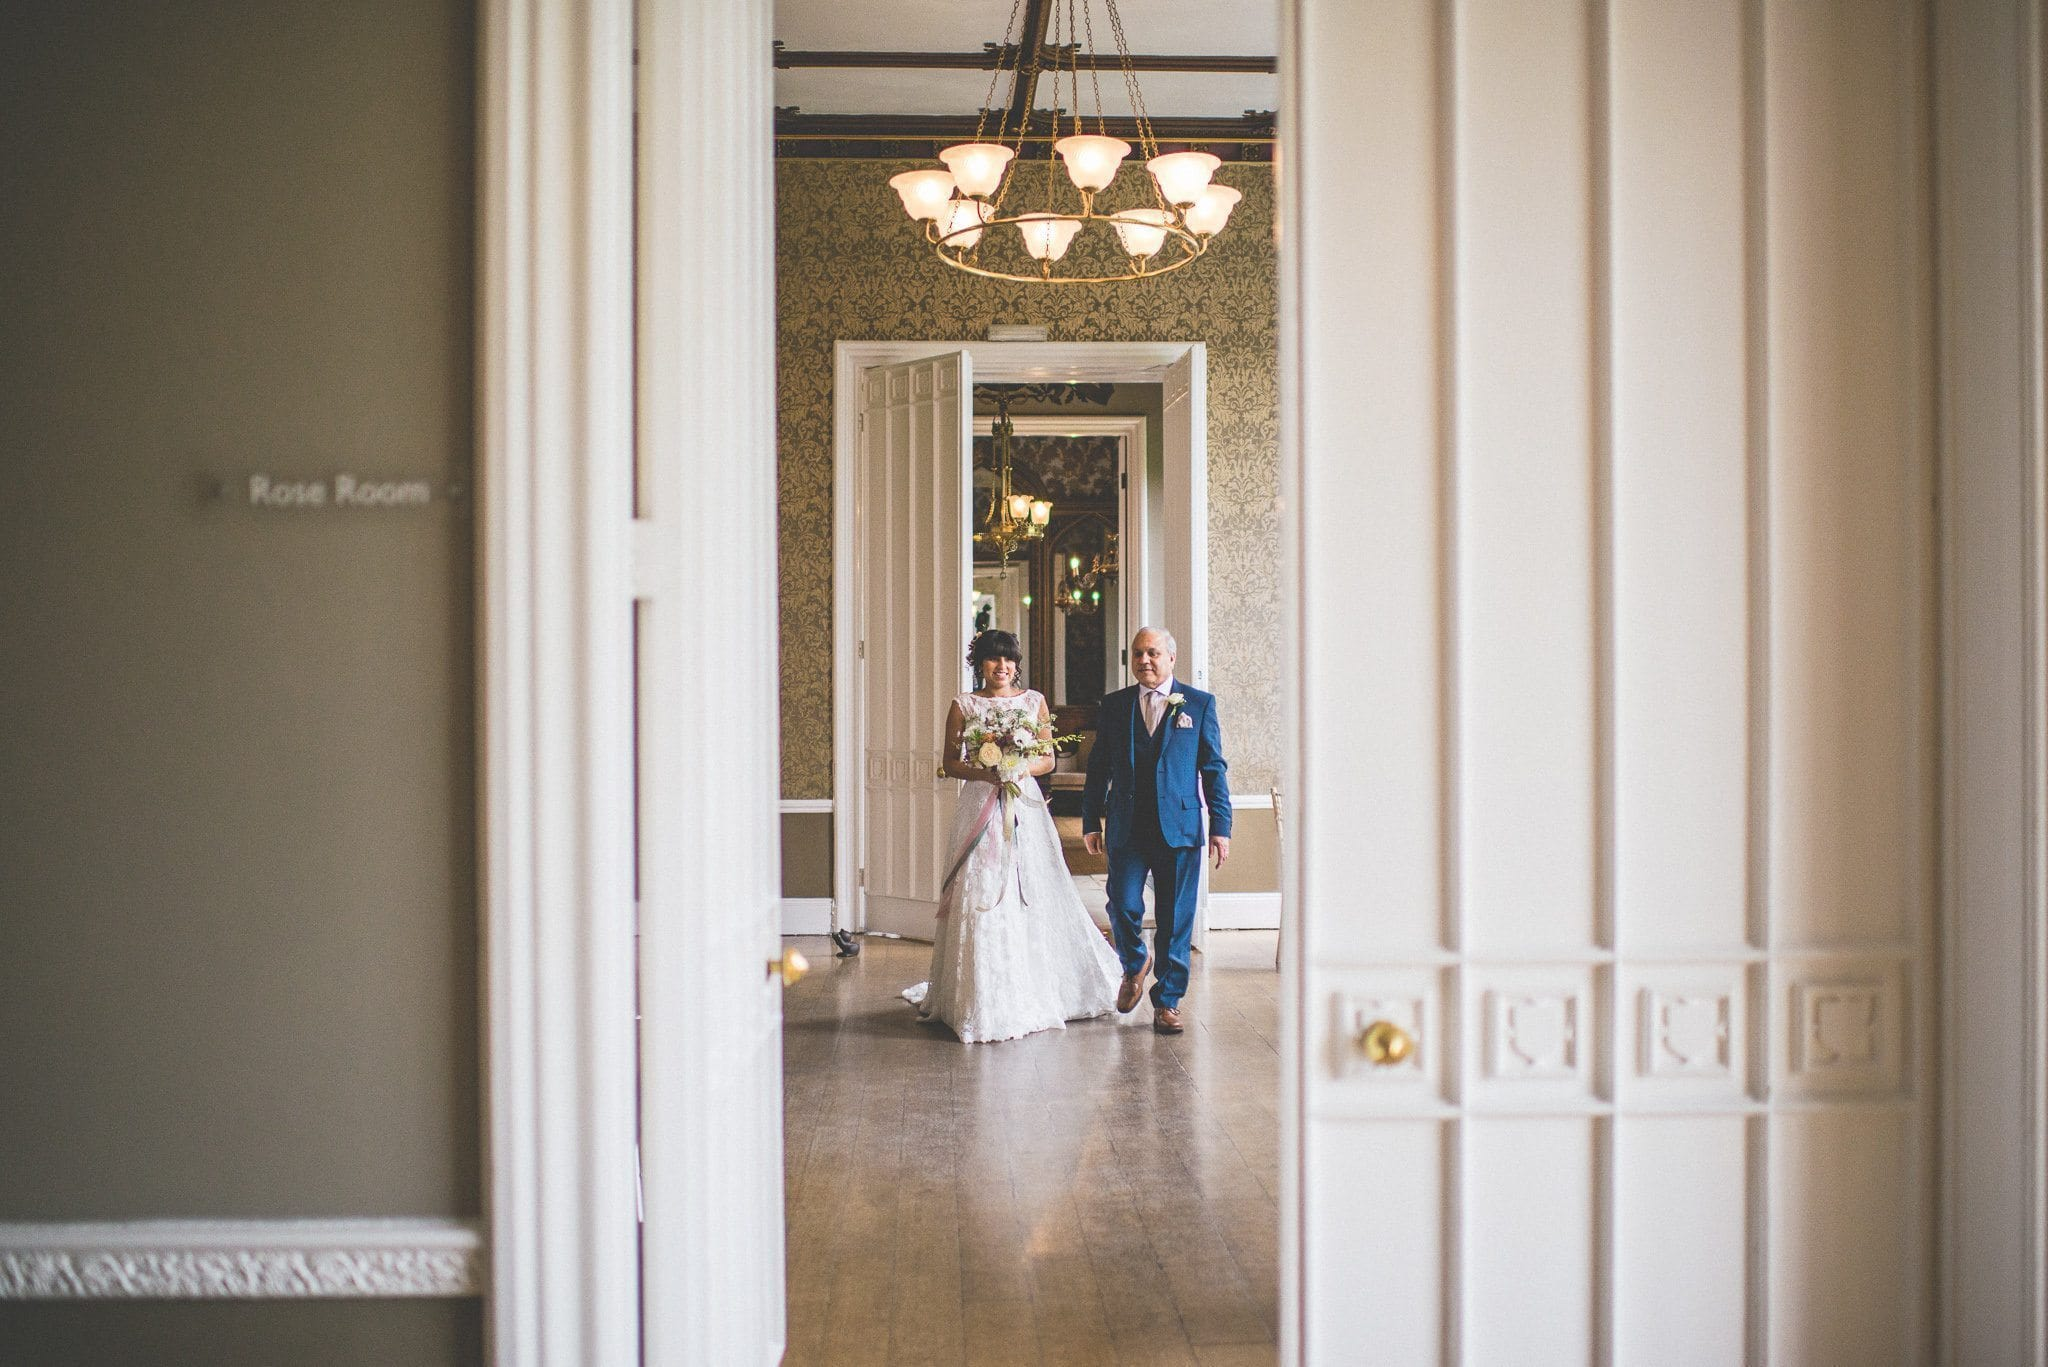 Bride and her dad crosses to enter the Nonsuch Mansion ceremony room